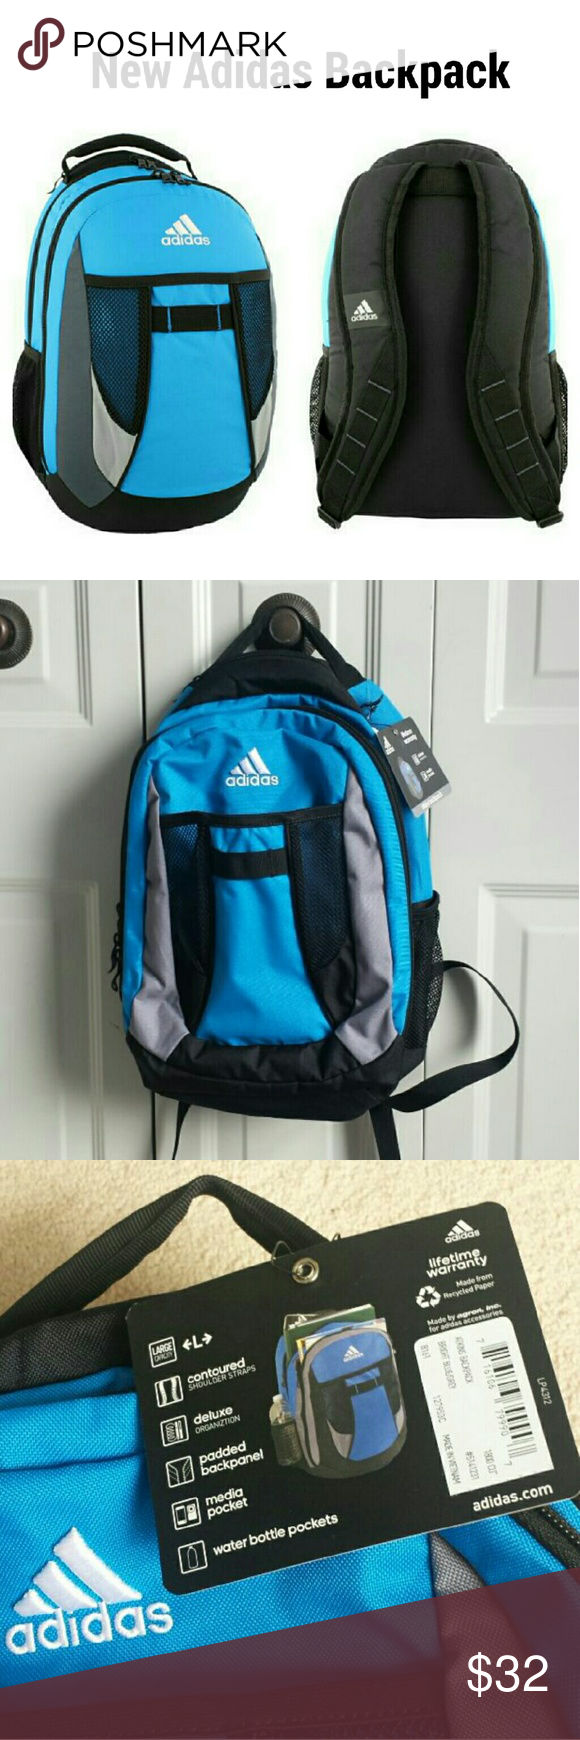 2388821949 New!Adidas Atkins Large Backpack School Book bag Adidas Atkins Large  Backpack School Book Bag